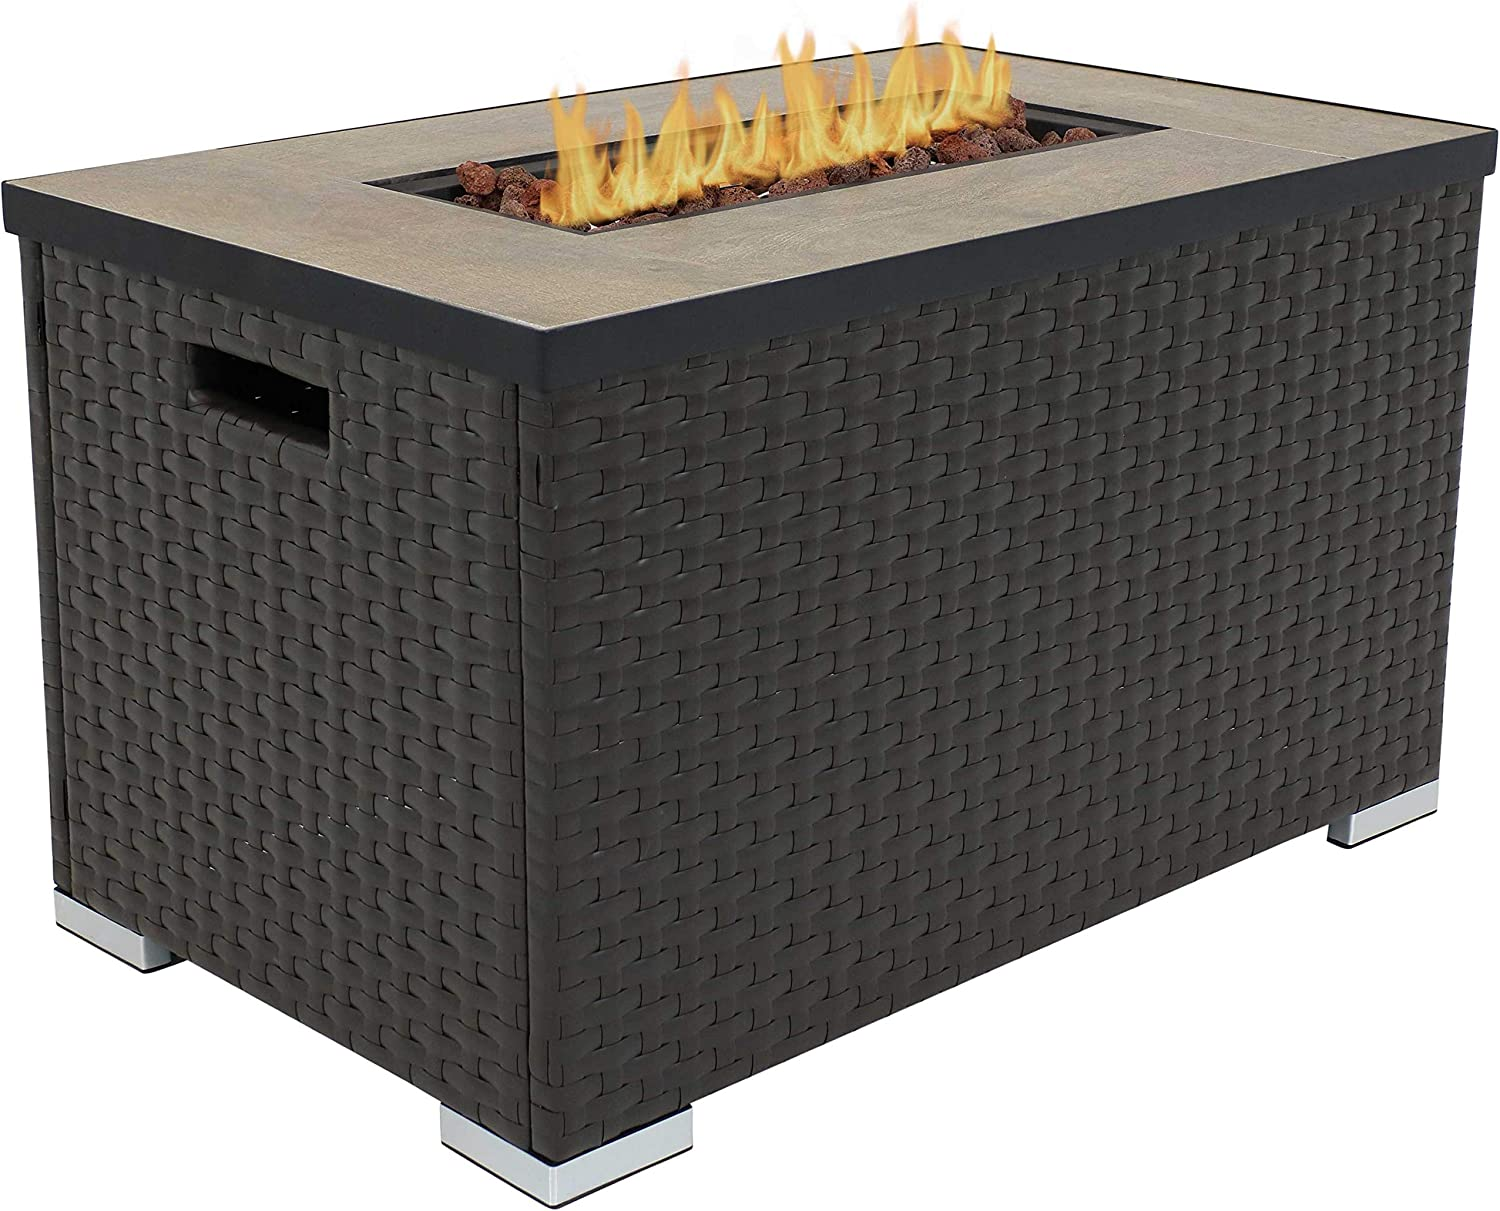 32-Inch Ideal for Yard Patio or Garden Sunnydaze Tile Top Resin Wicker Propane Gas Fire Pit Coffee Table with Stainless Steel Burner Smokeless Outdoor Gas Fire Table